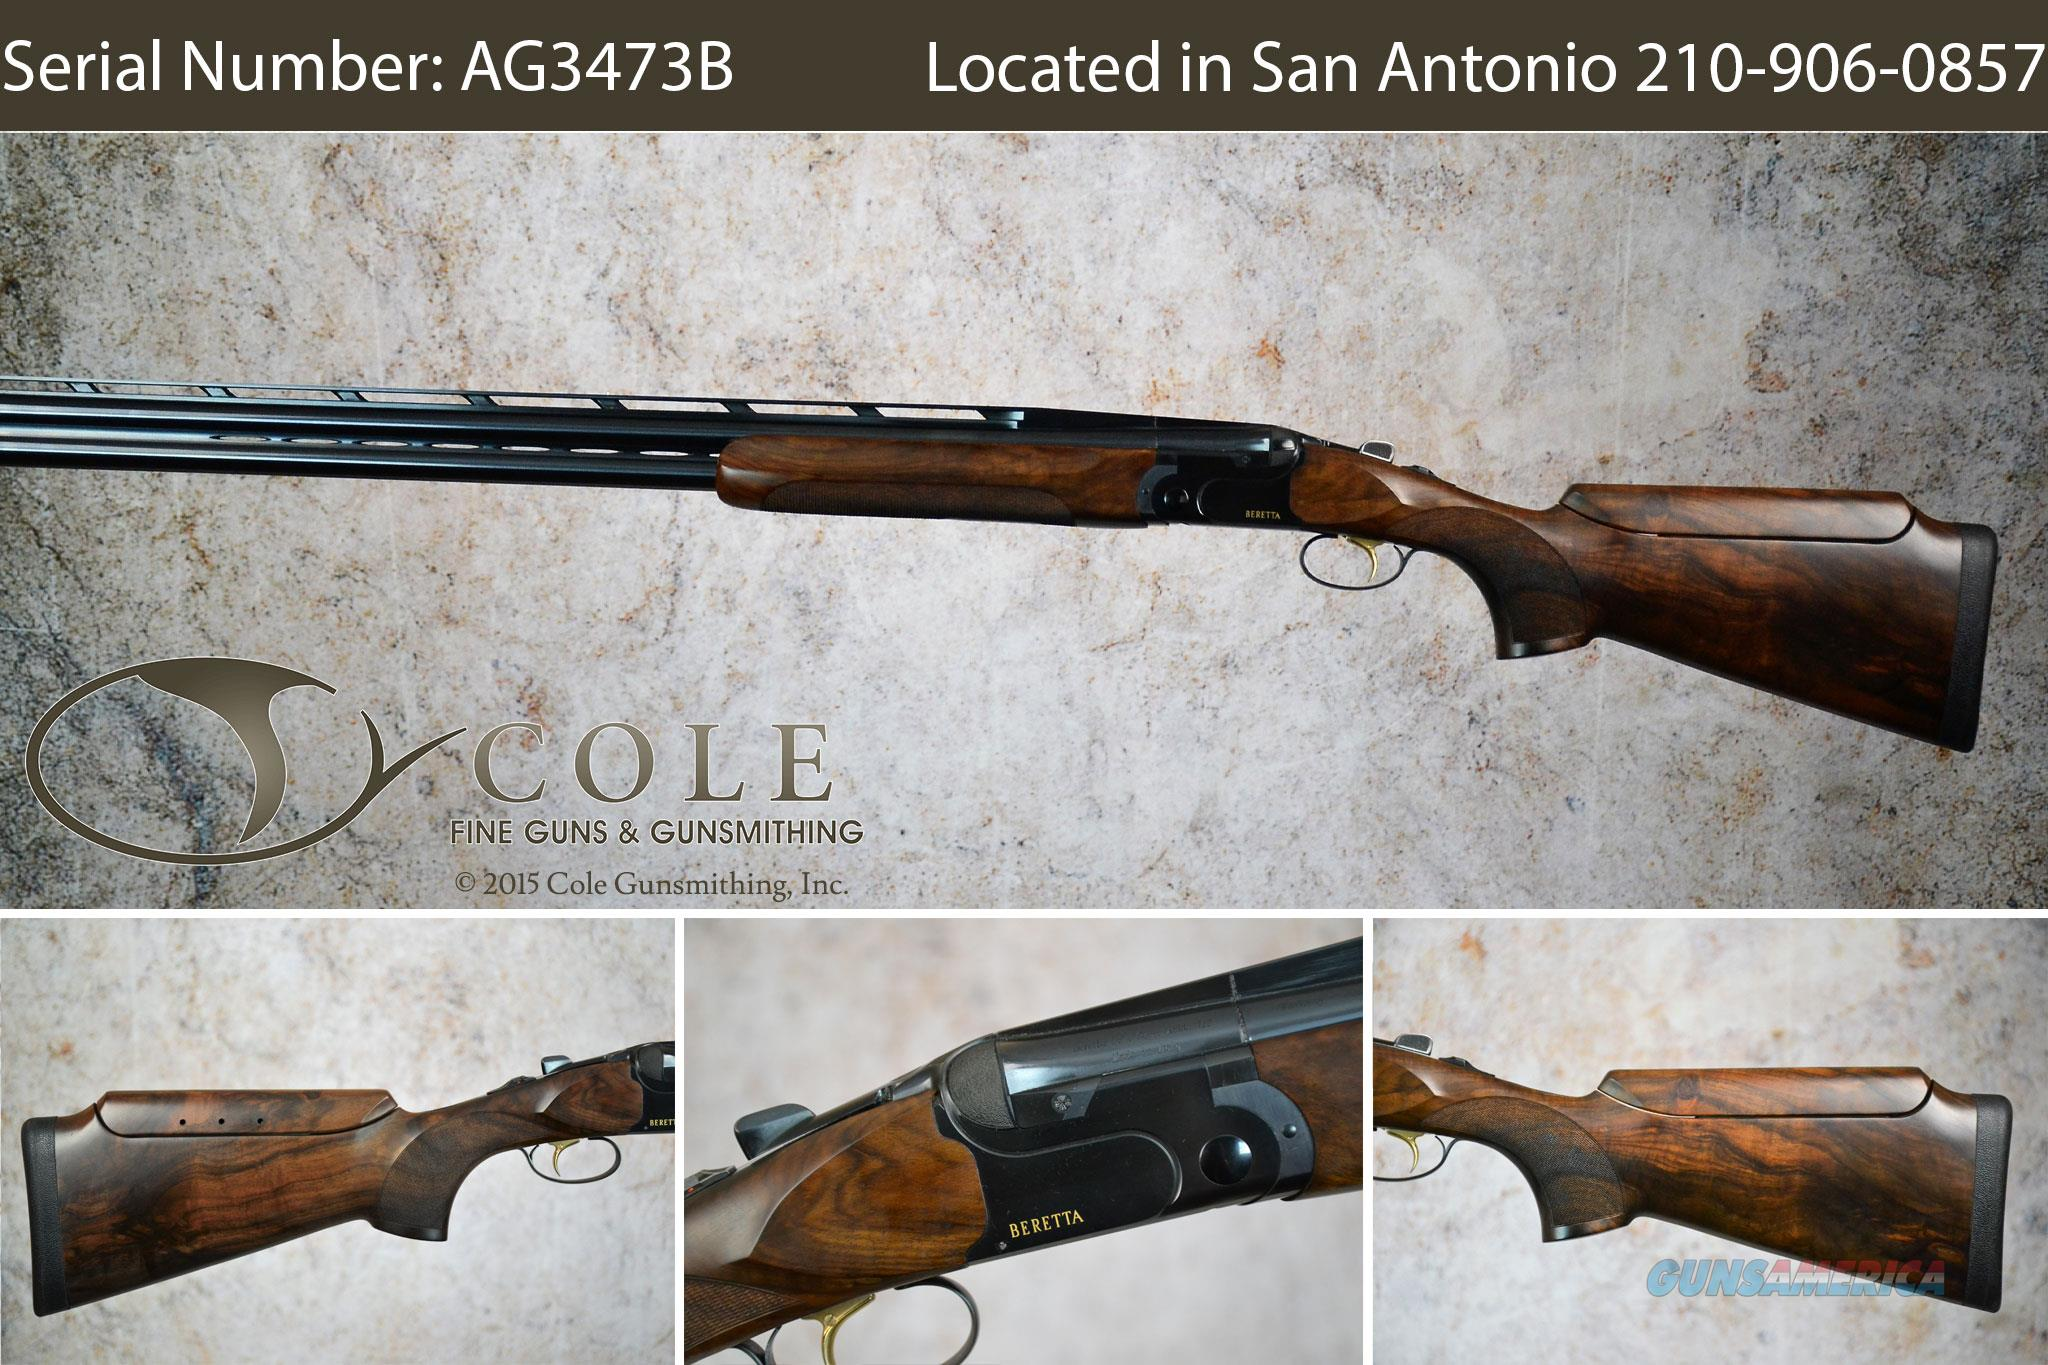 "Beretta DT10 Trap 12g 32"" SN:#AG3473B ~~Y2-Gun~~At Our San Antonio Store~~  Guns > Shotguns > Beretta Shotguns > O/U > Trap/Skeet"